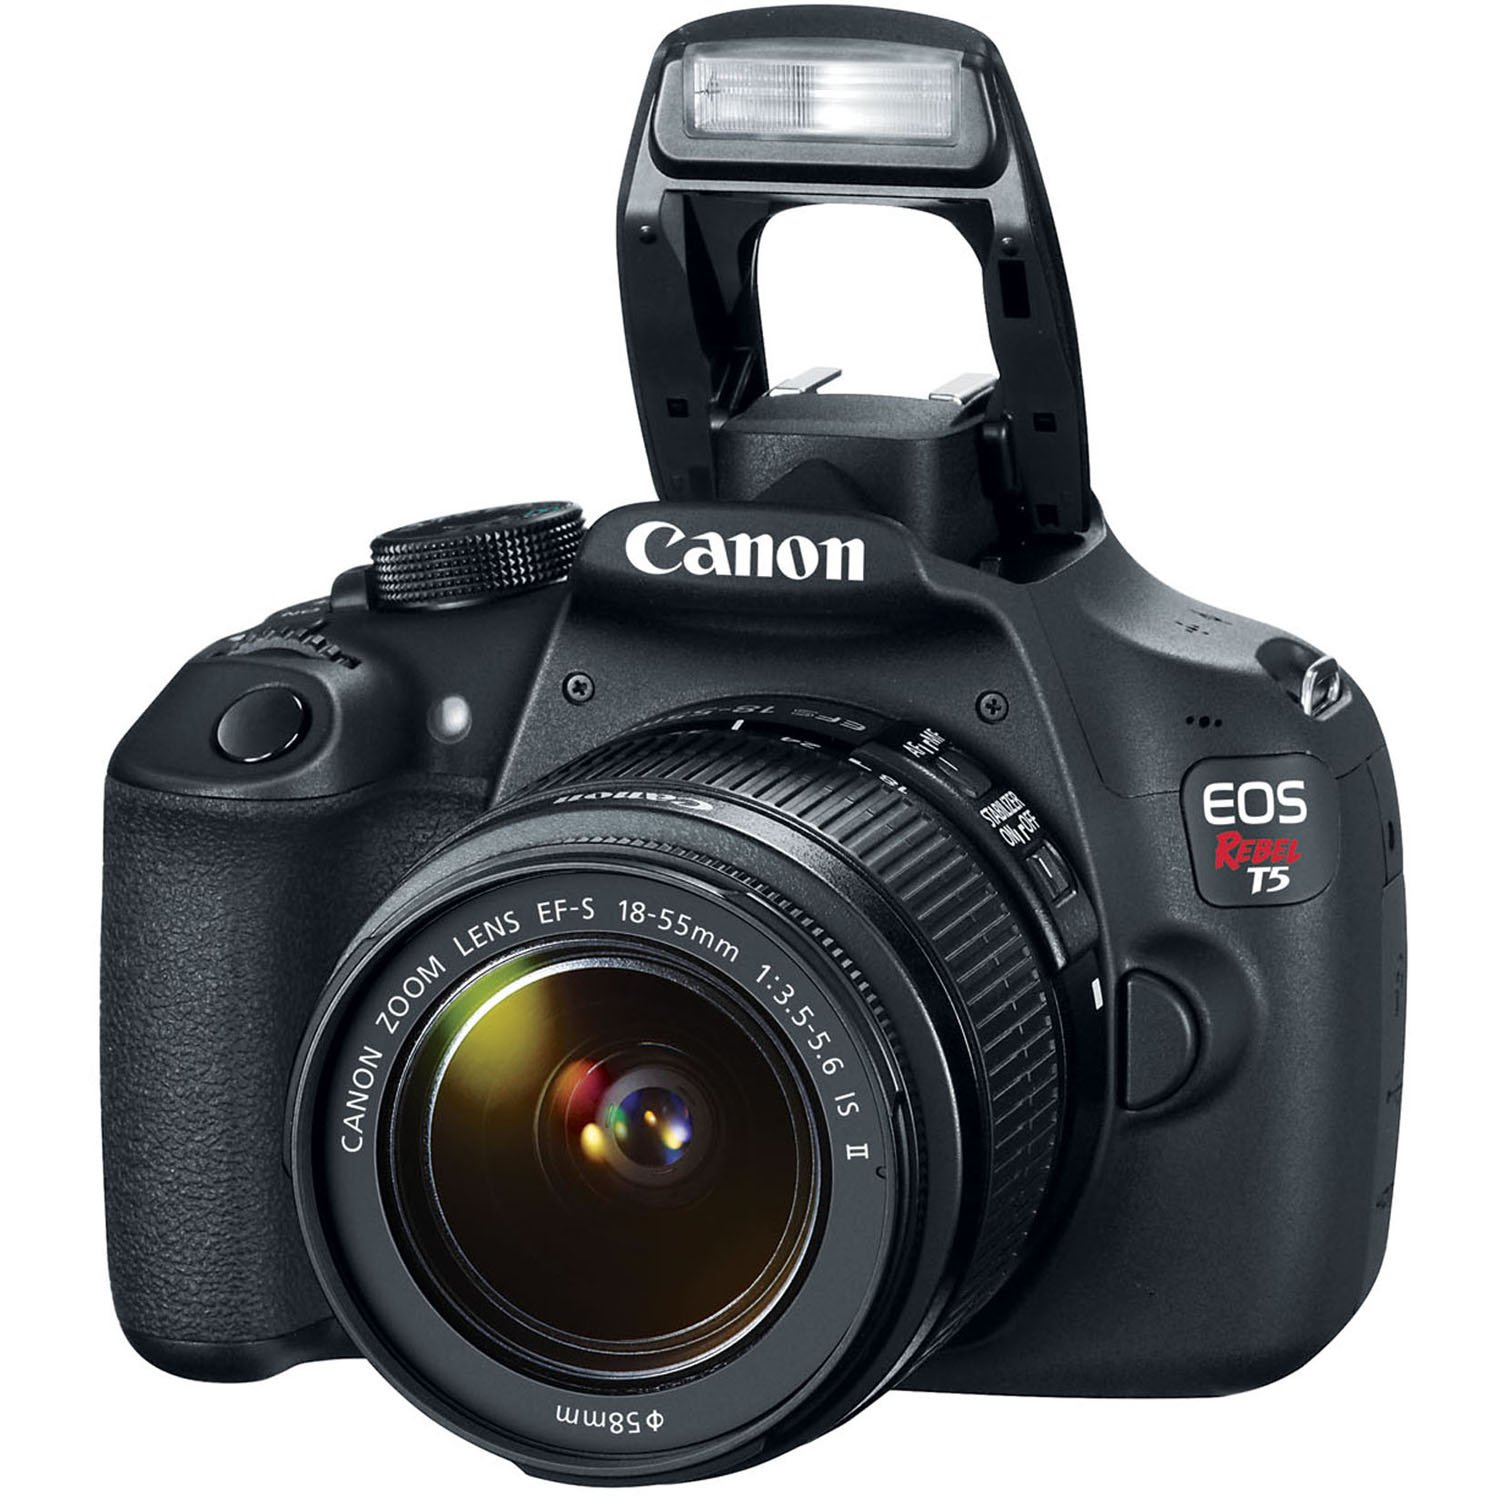 Camera Dslr Digital Camera Reviews buy canon eos rebel t5 ef s 18mp 18 55mm is ii digital slr kit online at low price in india camera reviews ratings am